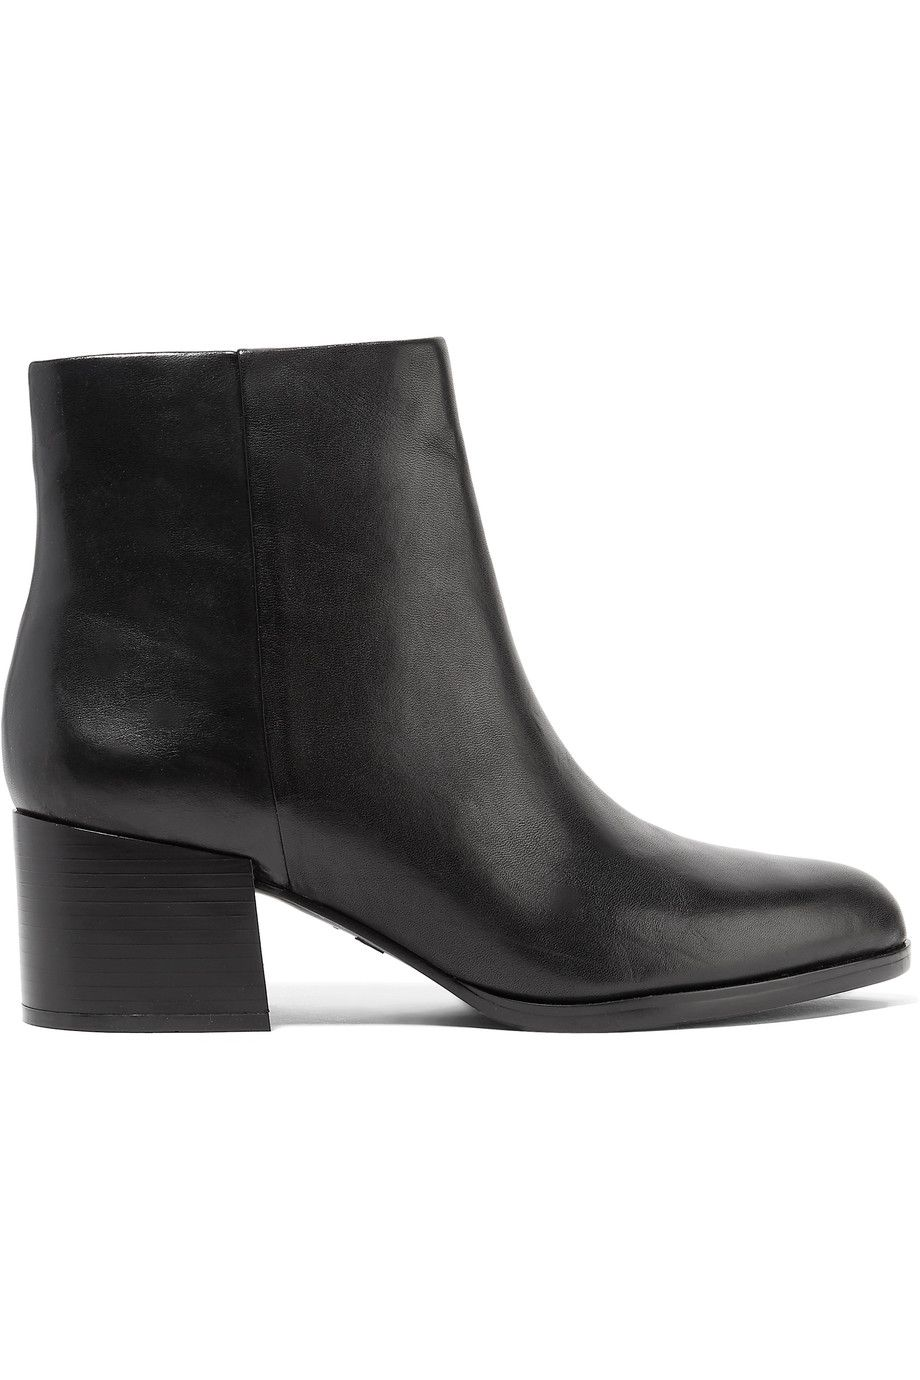 350abc1a6 SAM EDELMAN Joey leather ankle boots.  samedelman  shoes  boots ...